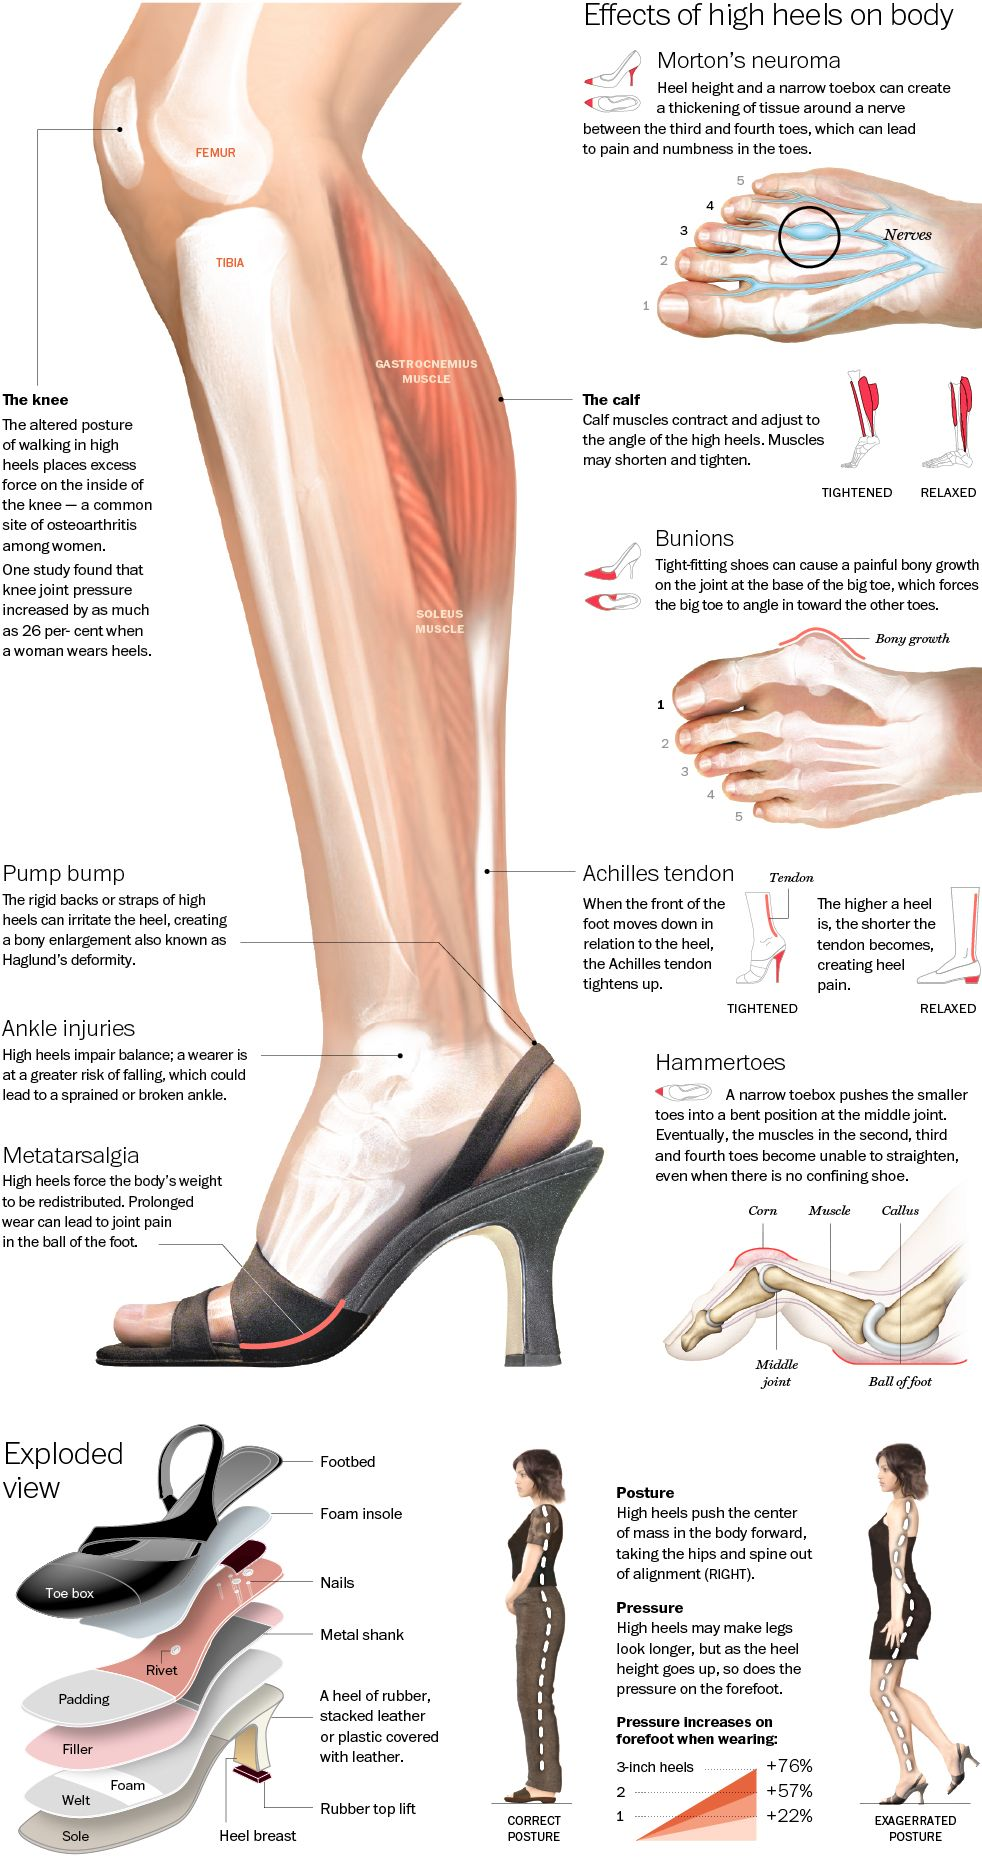 High heels can be a pain in the feet - The Washington Post ...